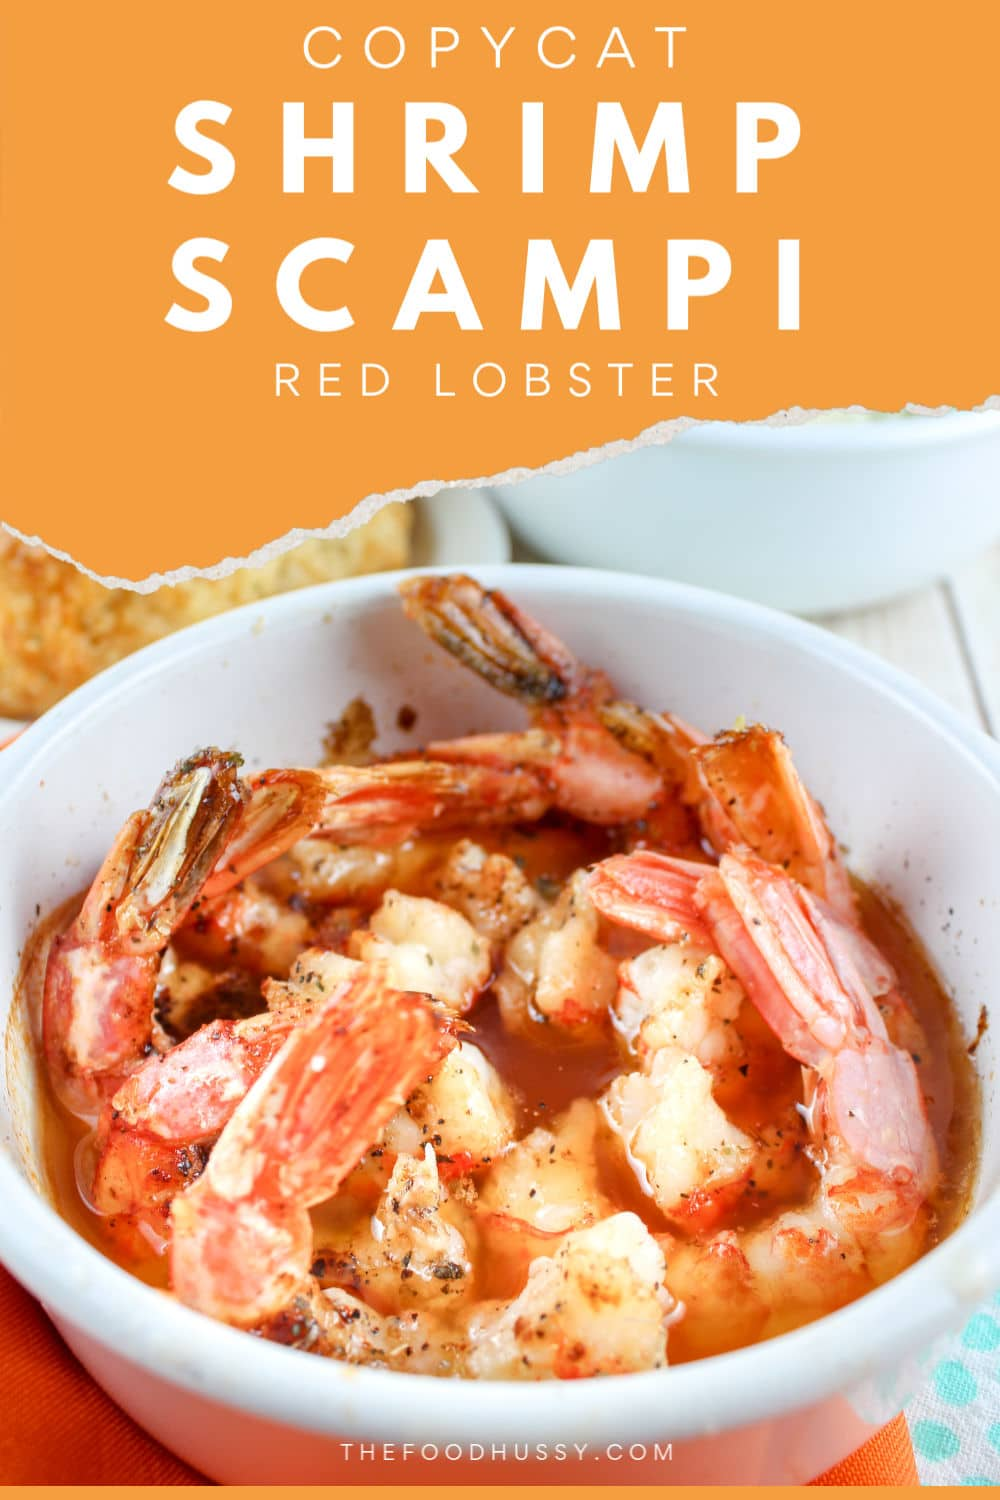 Red Lobster's Shrimp Scampi has always been one of my favorite dishes and I can't believe HOW EASY it is to make at home!!!! This copycat version is spot on – and so simple! via @foodhussy